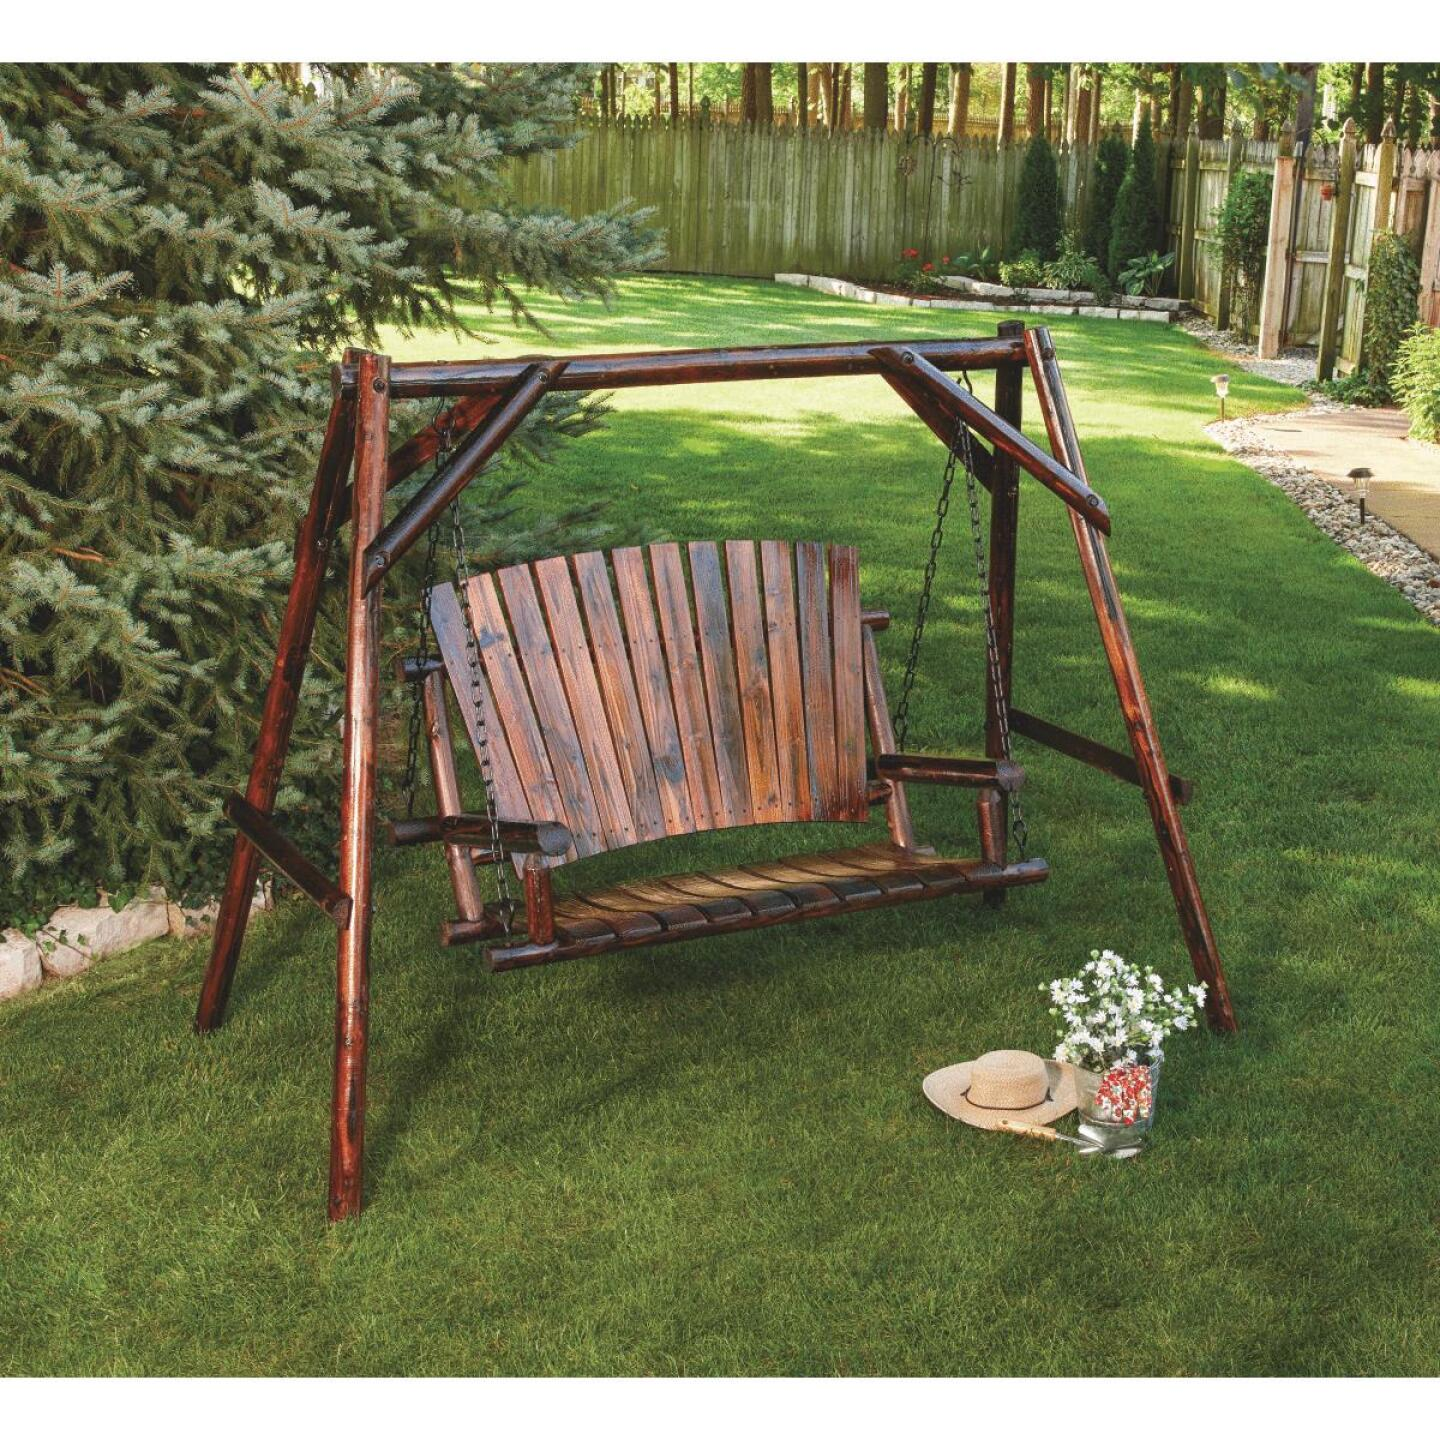 Char-Log 2-Person 90 In. W. x 67.5 In. H. x 50 In. D. Charred Wood Patio Swing Image 5